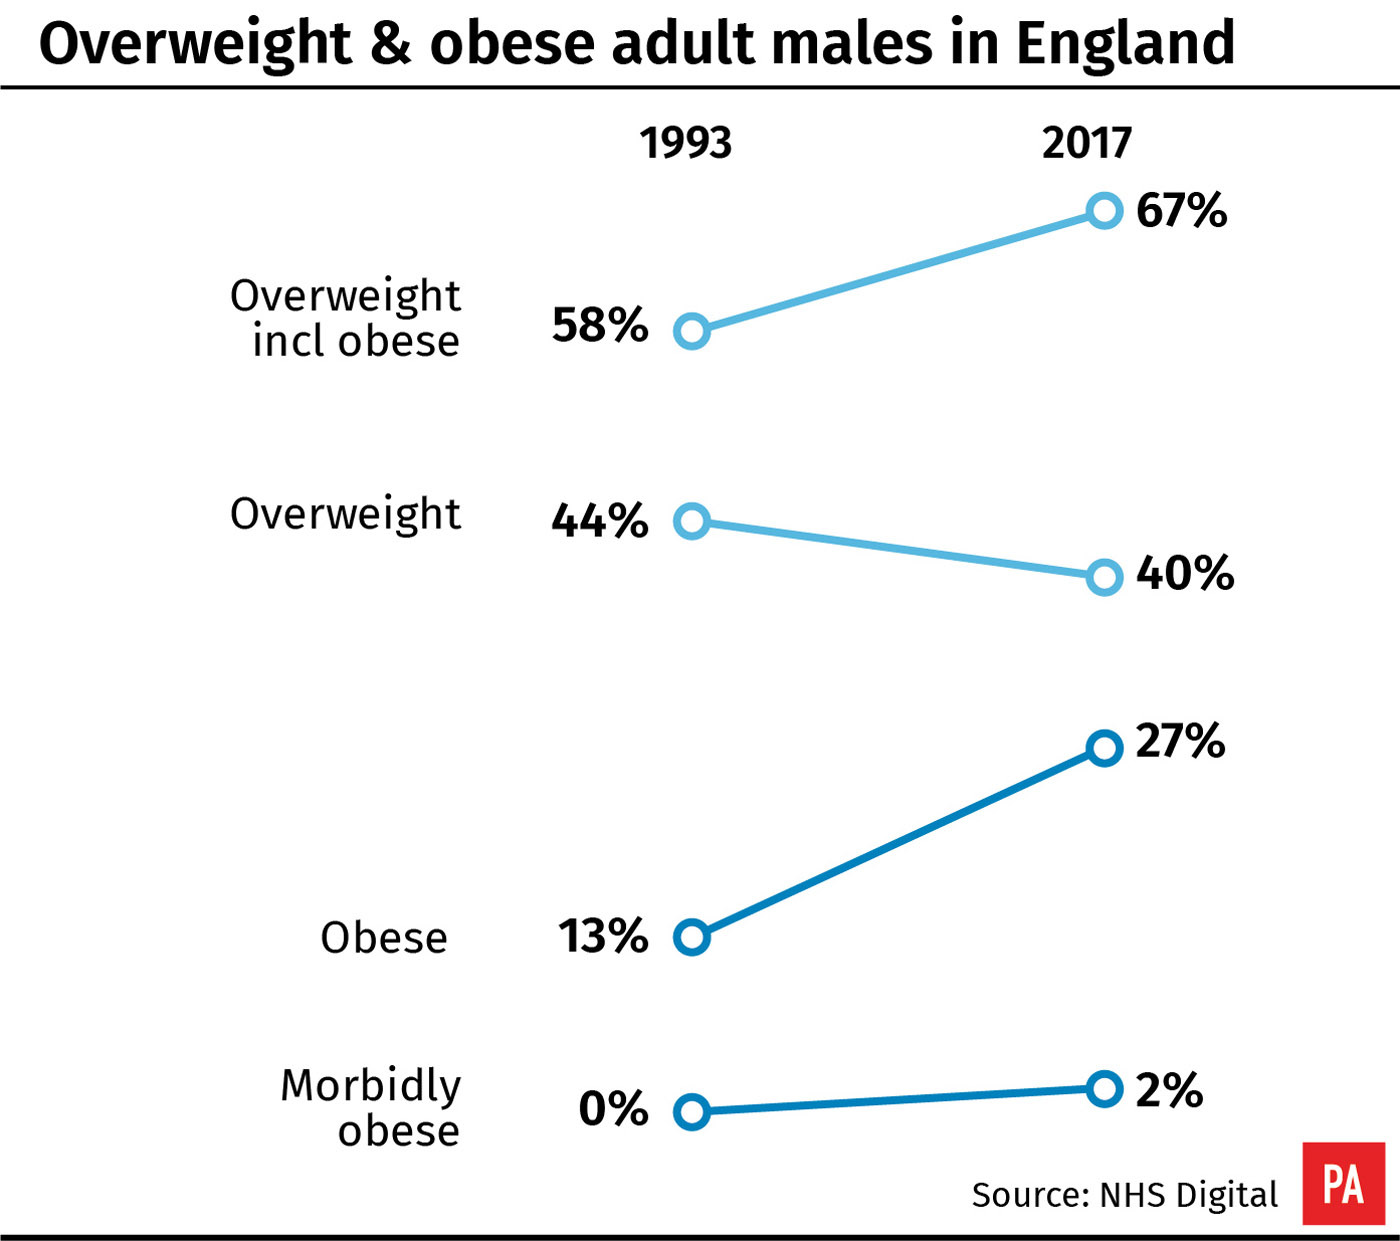 Overweight & obese adult males in England